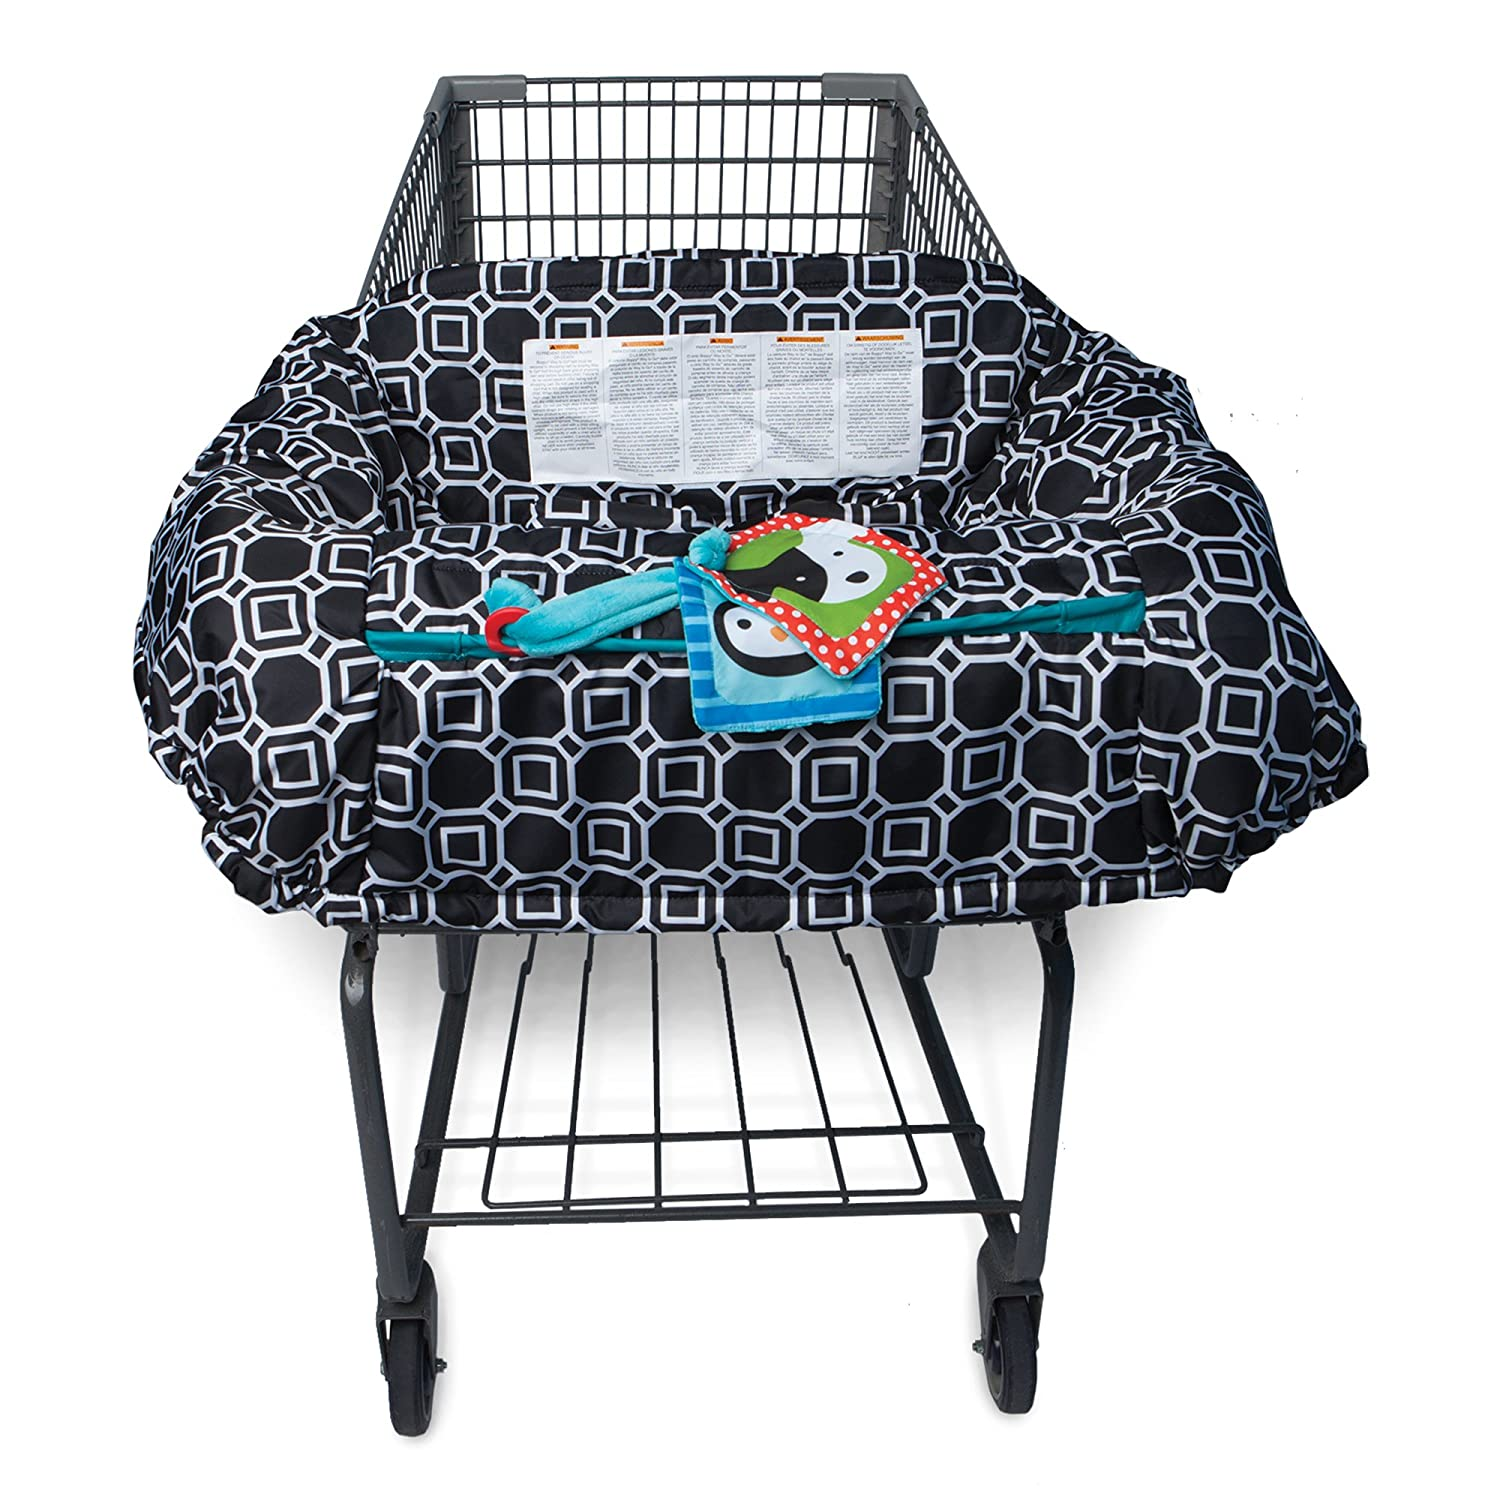 Boppy Shopping Cart and High Chair Cover, City Squares Black and White 7300477K 3PK